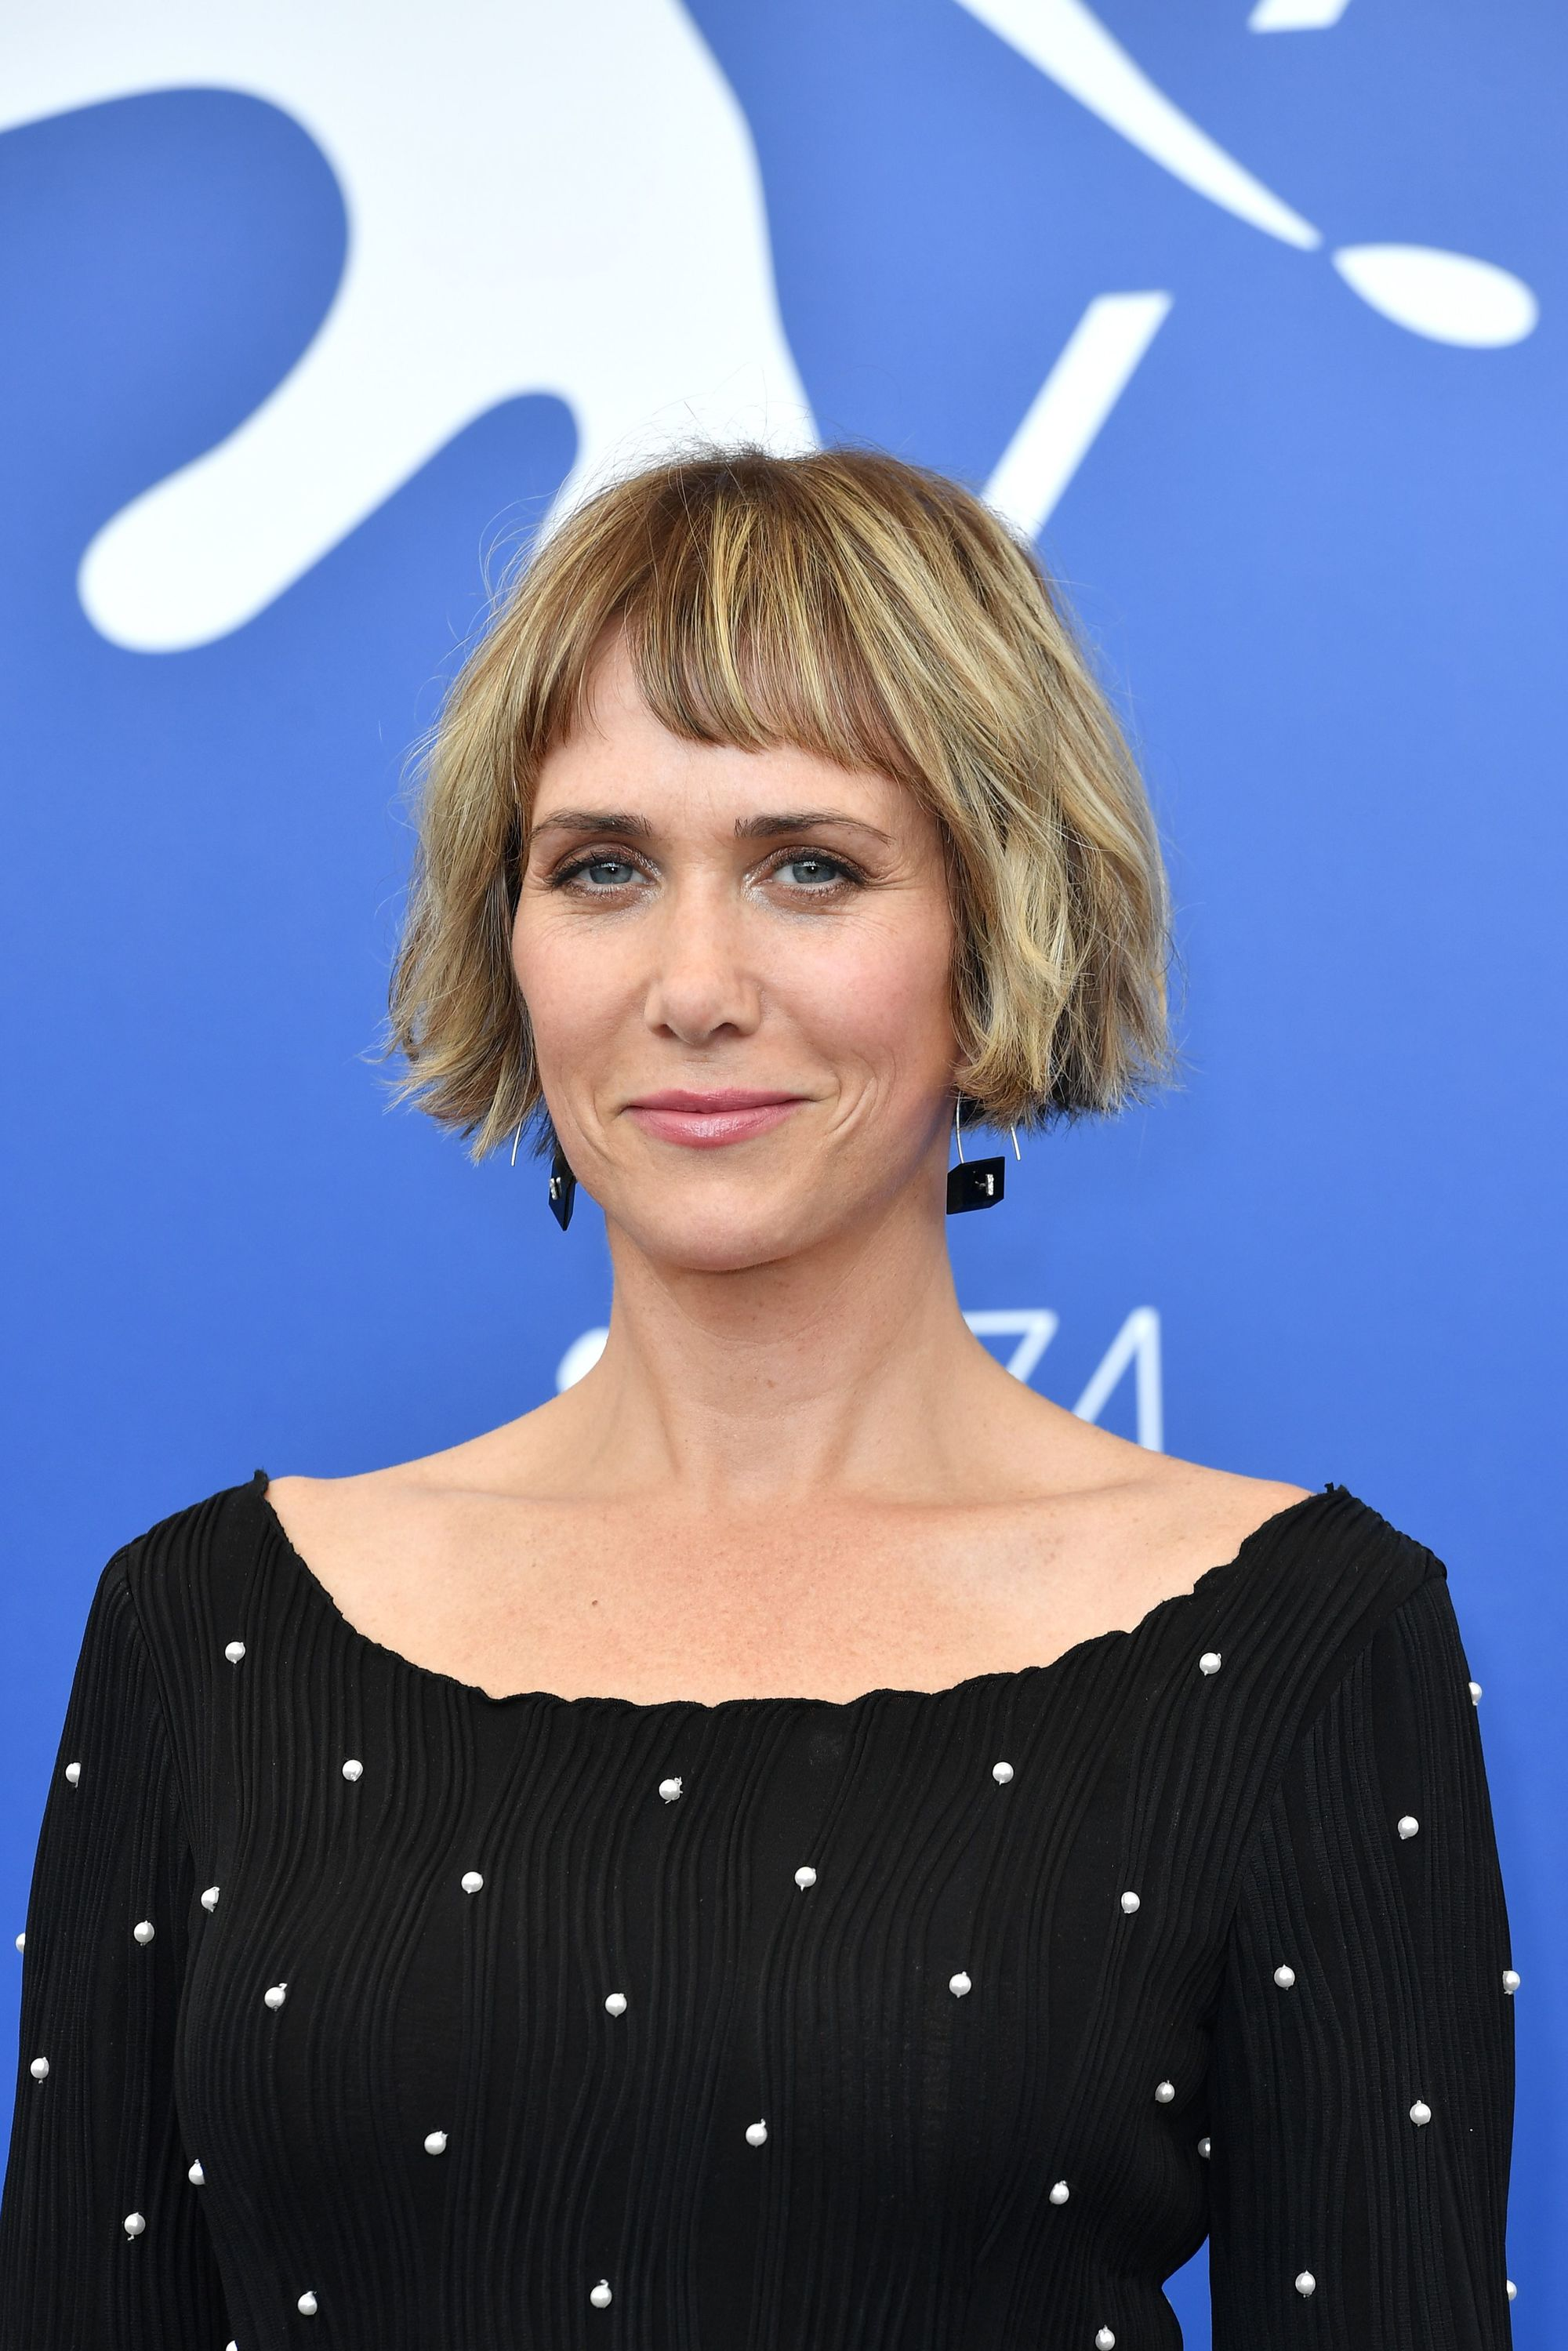 close up shot of kirsten wig with short bob haircut with sunny highlights in it, wearing black top with pearls on it and statement earrings